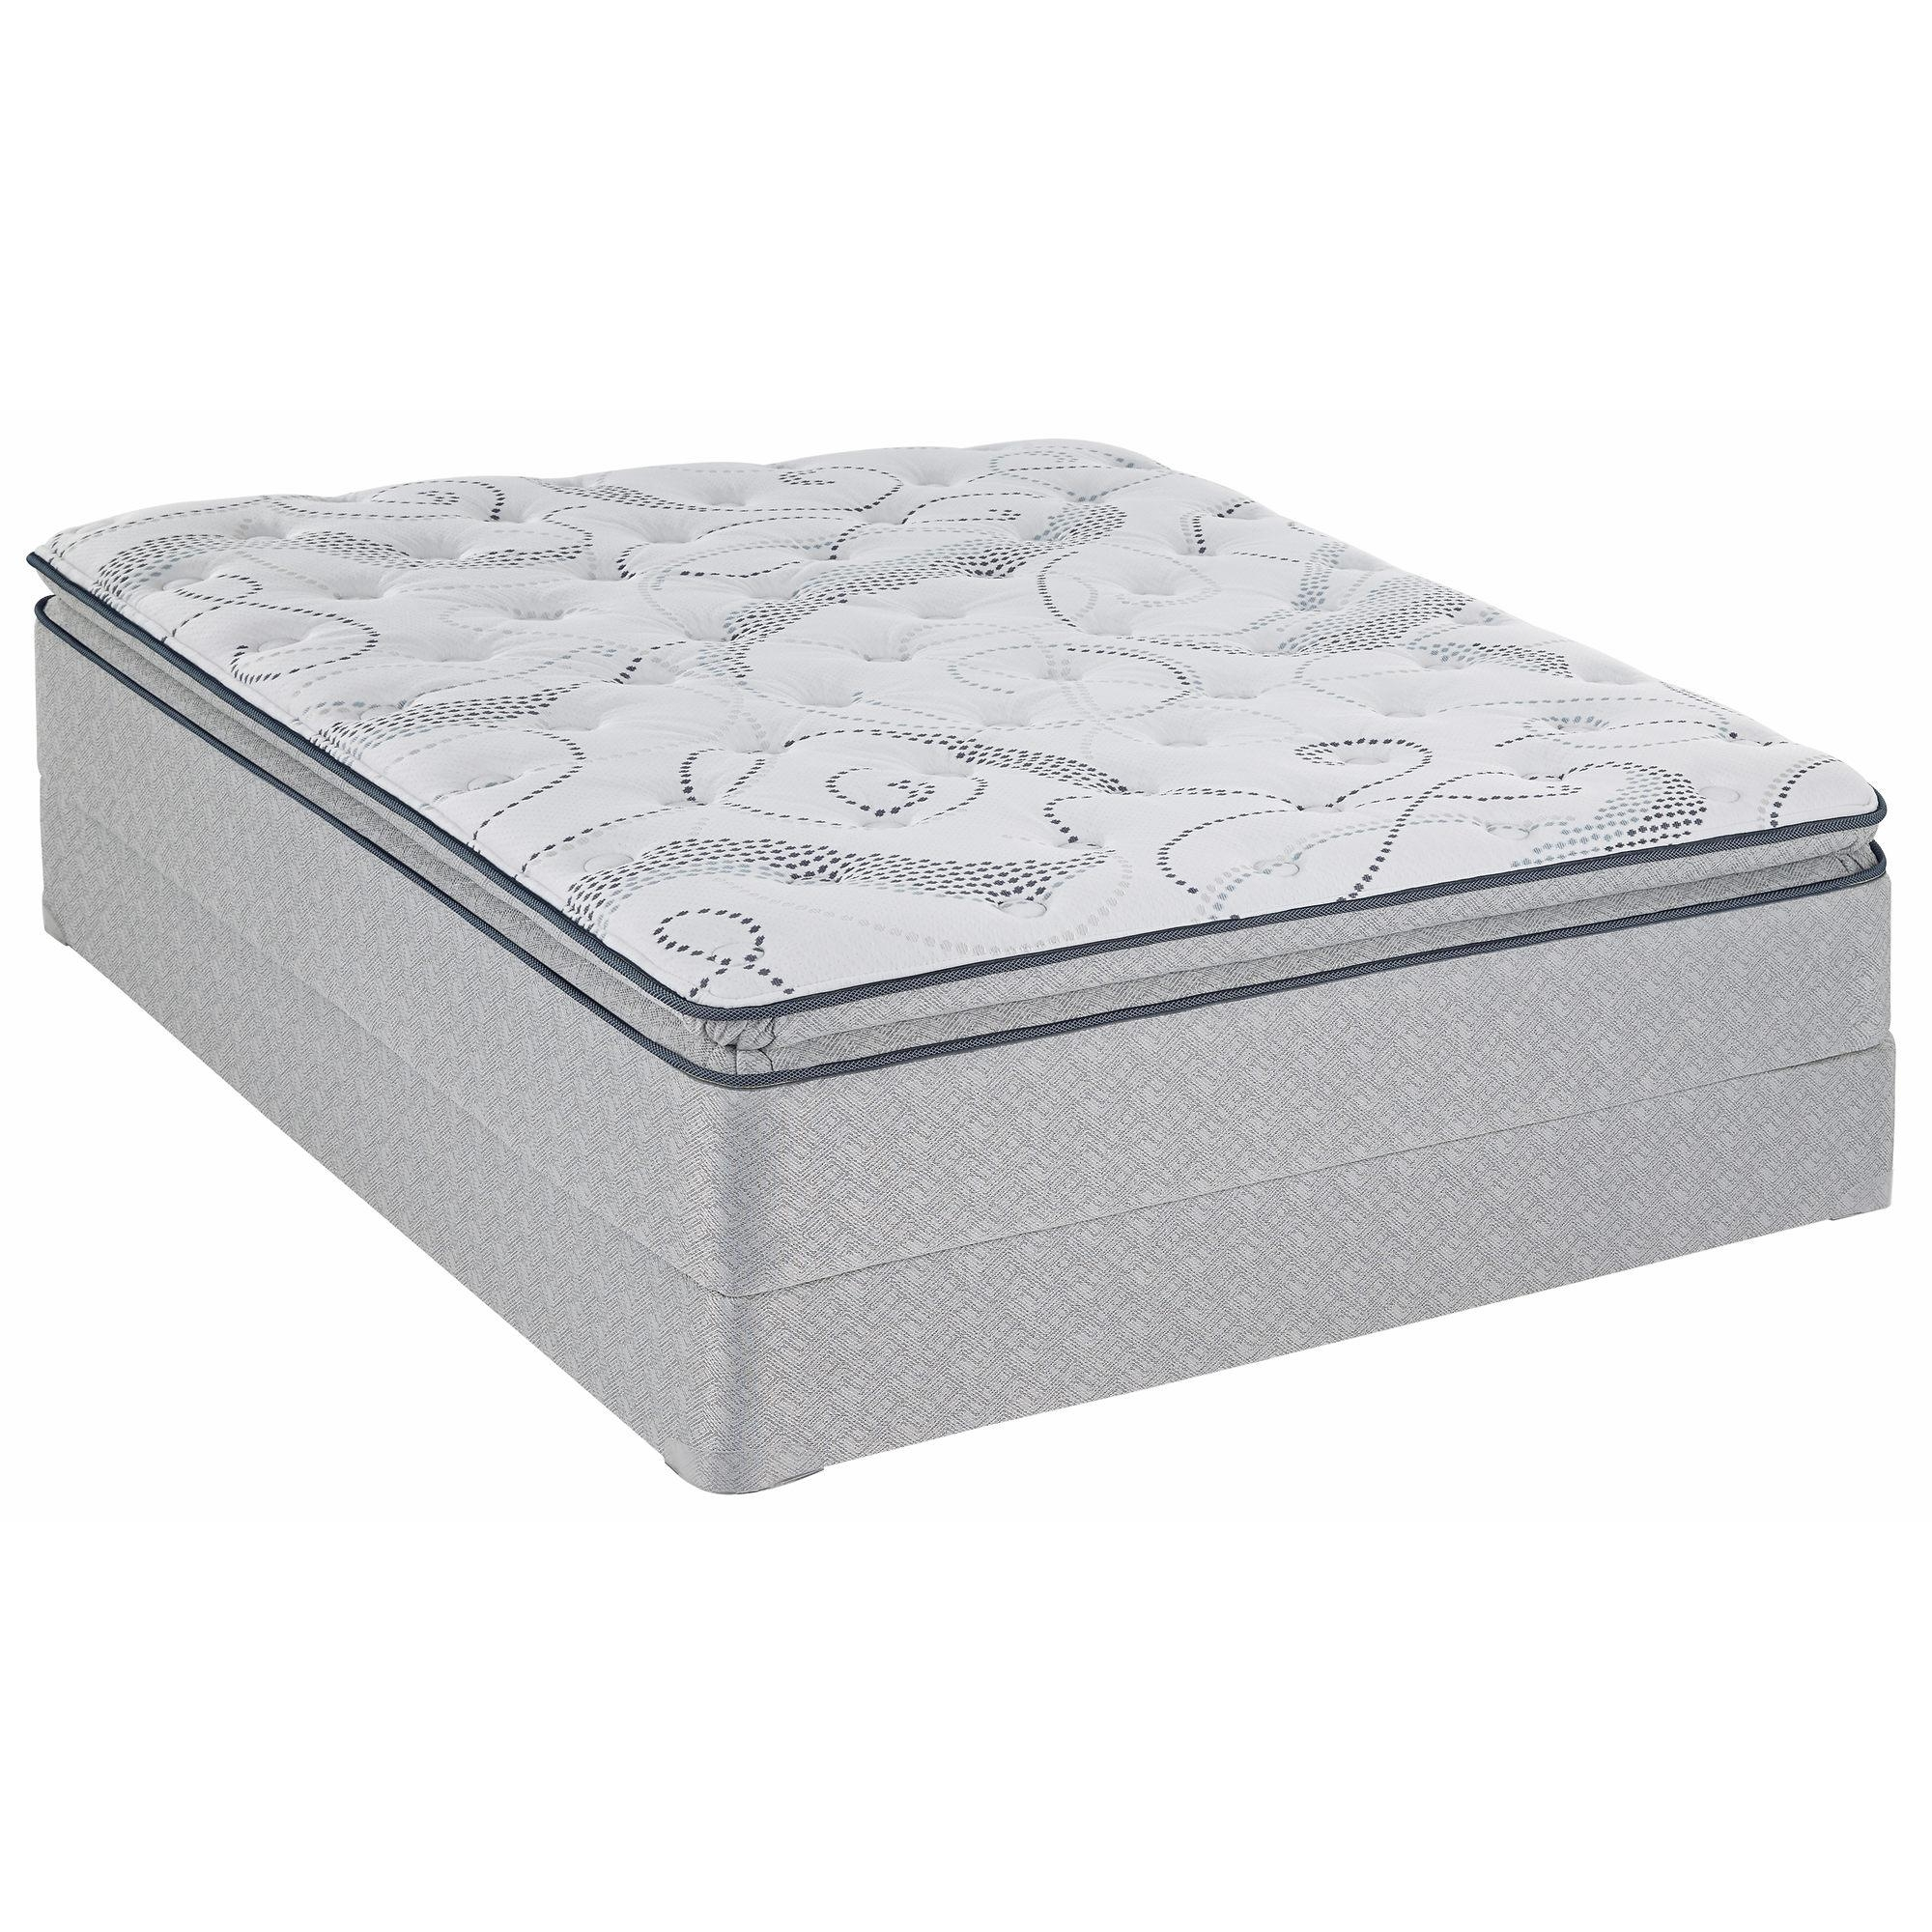 Queen Mattress And Box Spring Dimensions | Vertigino Mattress Regarding Queen Mattress Sets (Image 15 of 20)